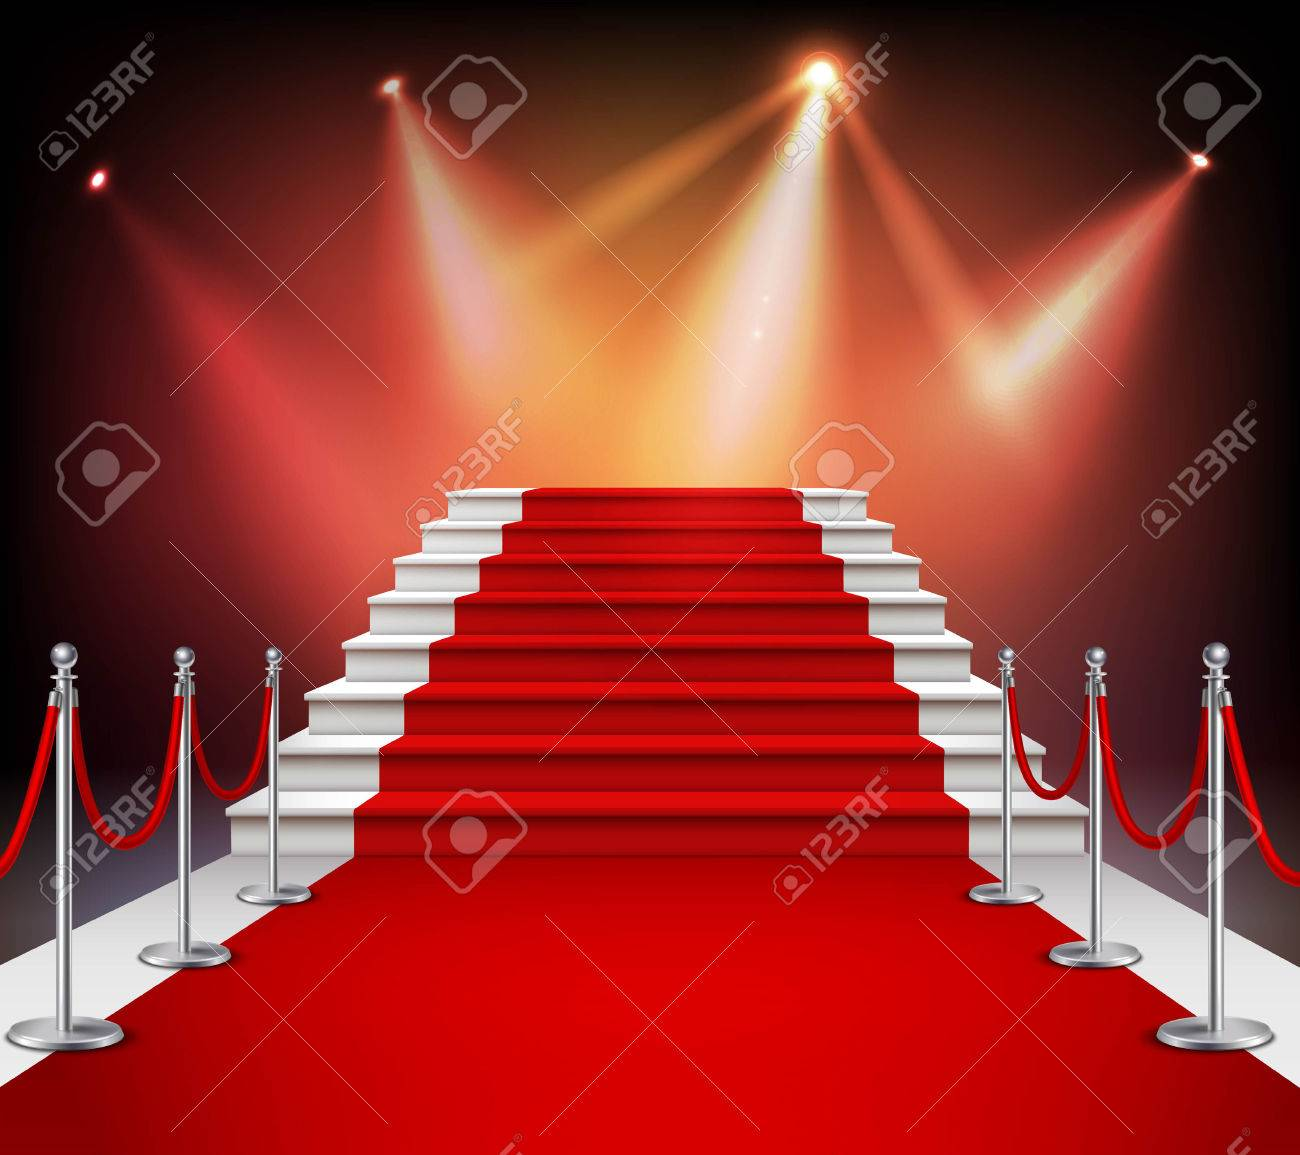 White Stairs Covered With Red Carpet And Illuminated By Spotlight     Vector   White stairs covered with red carpet and illuminated by spotlight  realistic vector illustration